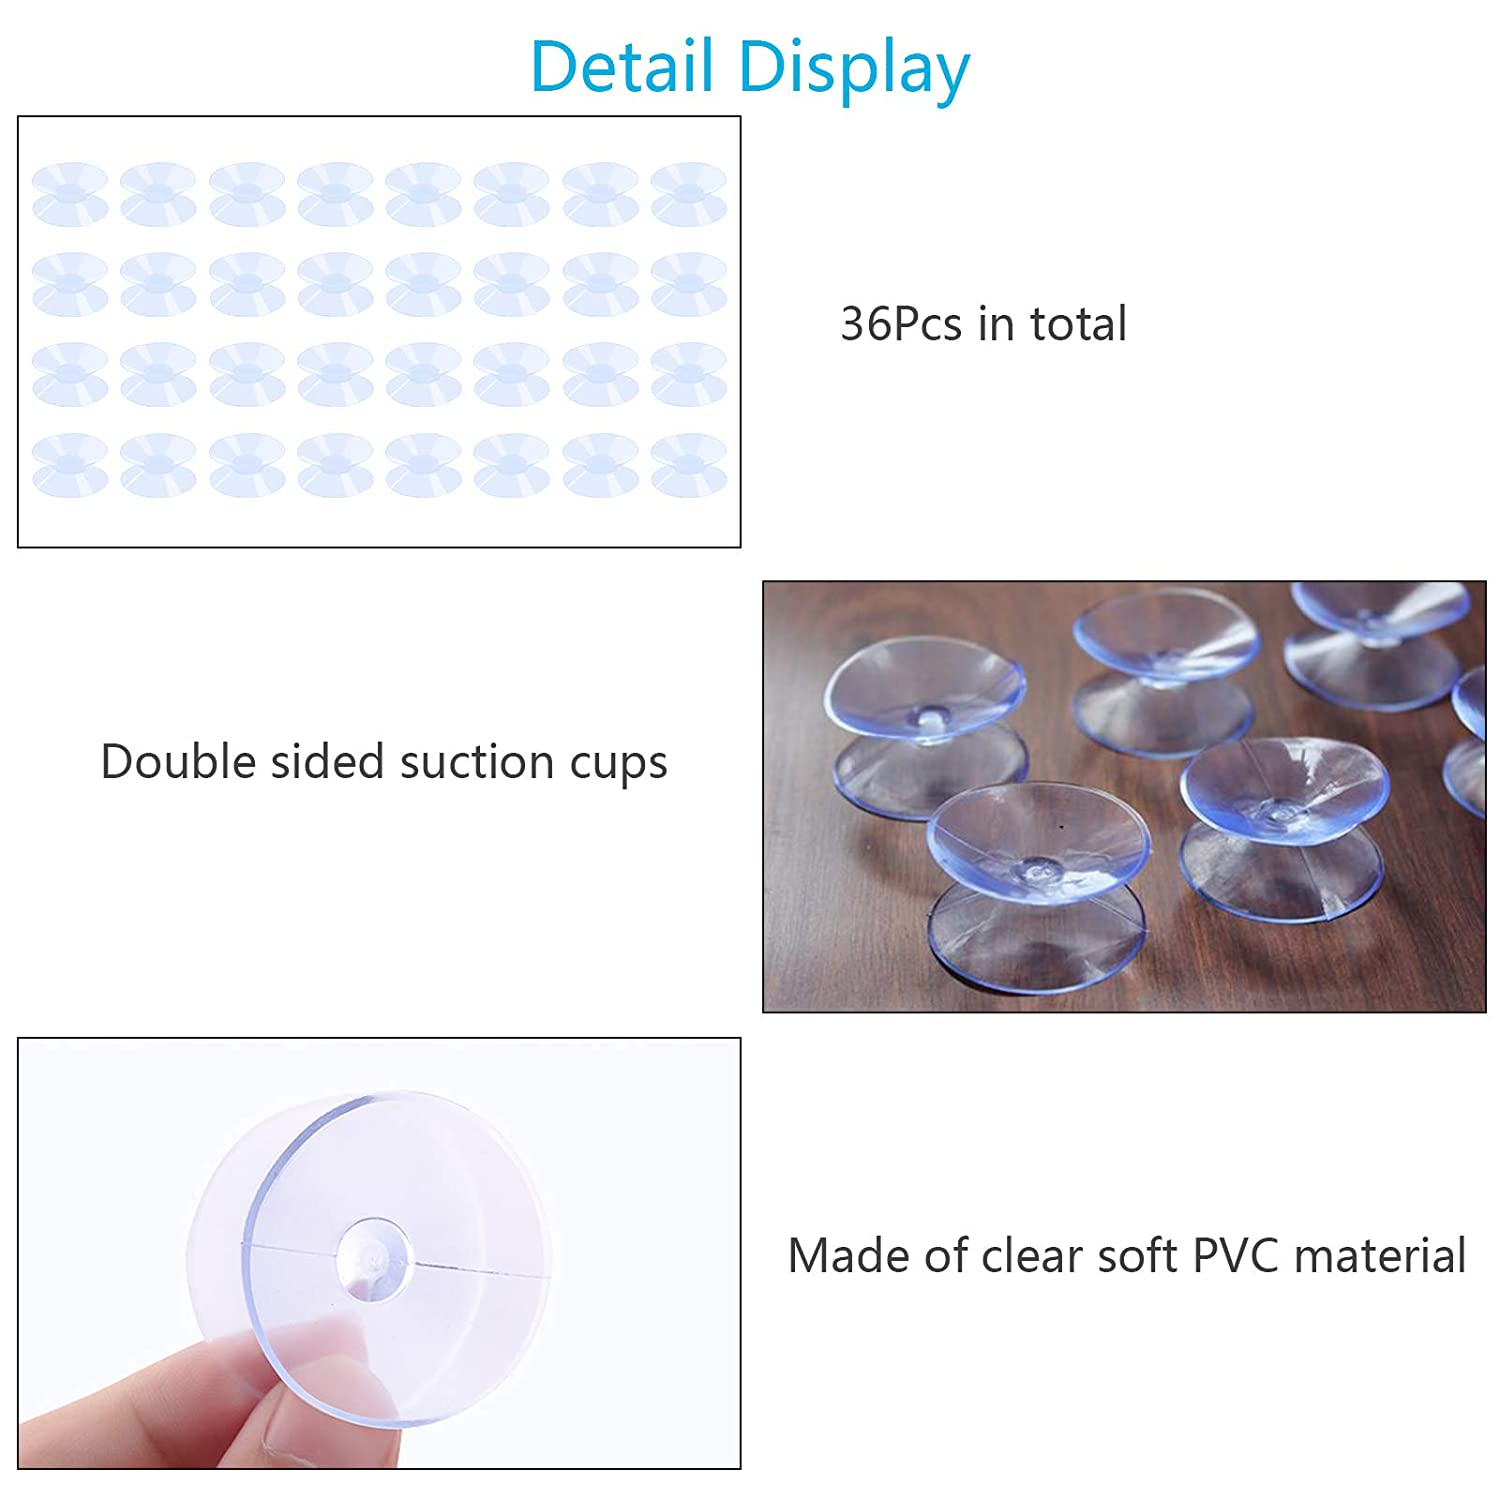 Window Hanger Suction Cup. BIGKASI 36pcs Double Sided Suction Cups Sucker Pads for Glass Plastic 30mm,Glass Table Top Bumpers,Glass Table Top Spacers